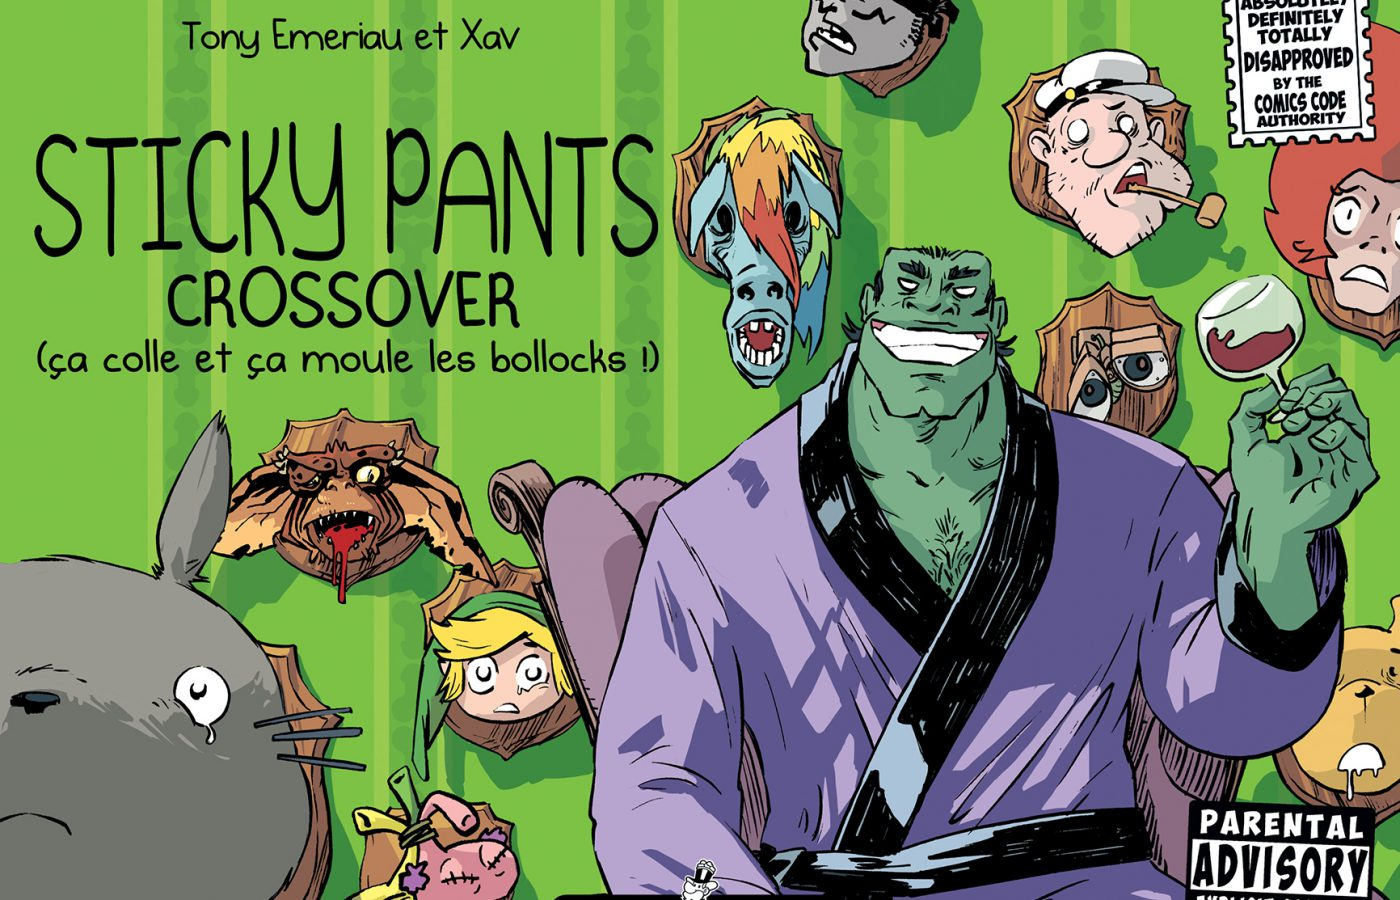 Sticky Pants #3, Crossover, Tony Emeriau, Xavier Henrion, Monsieur Pop Corn